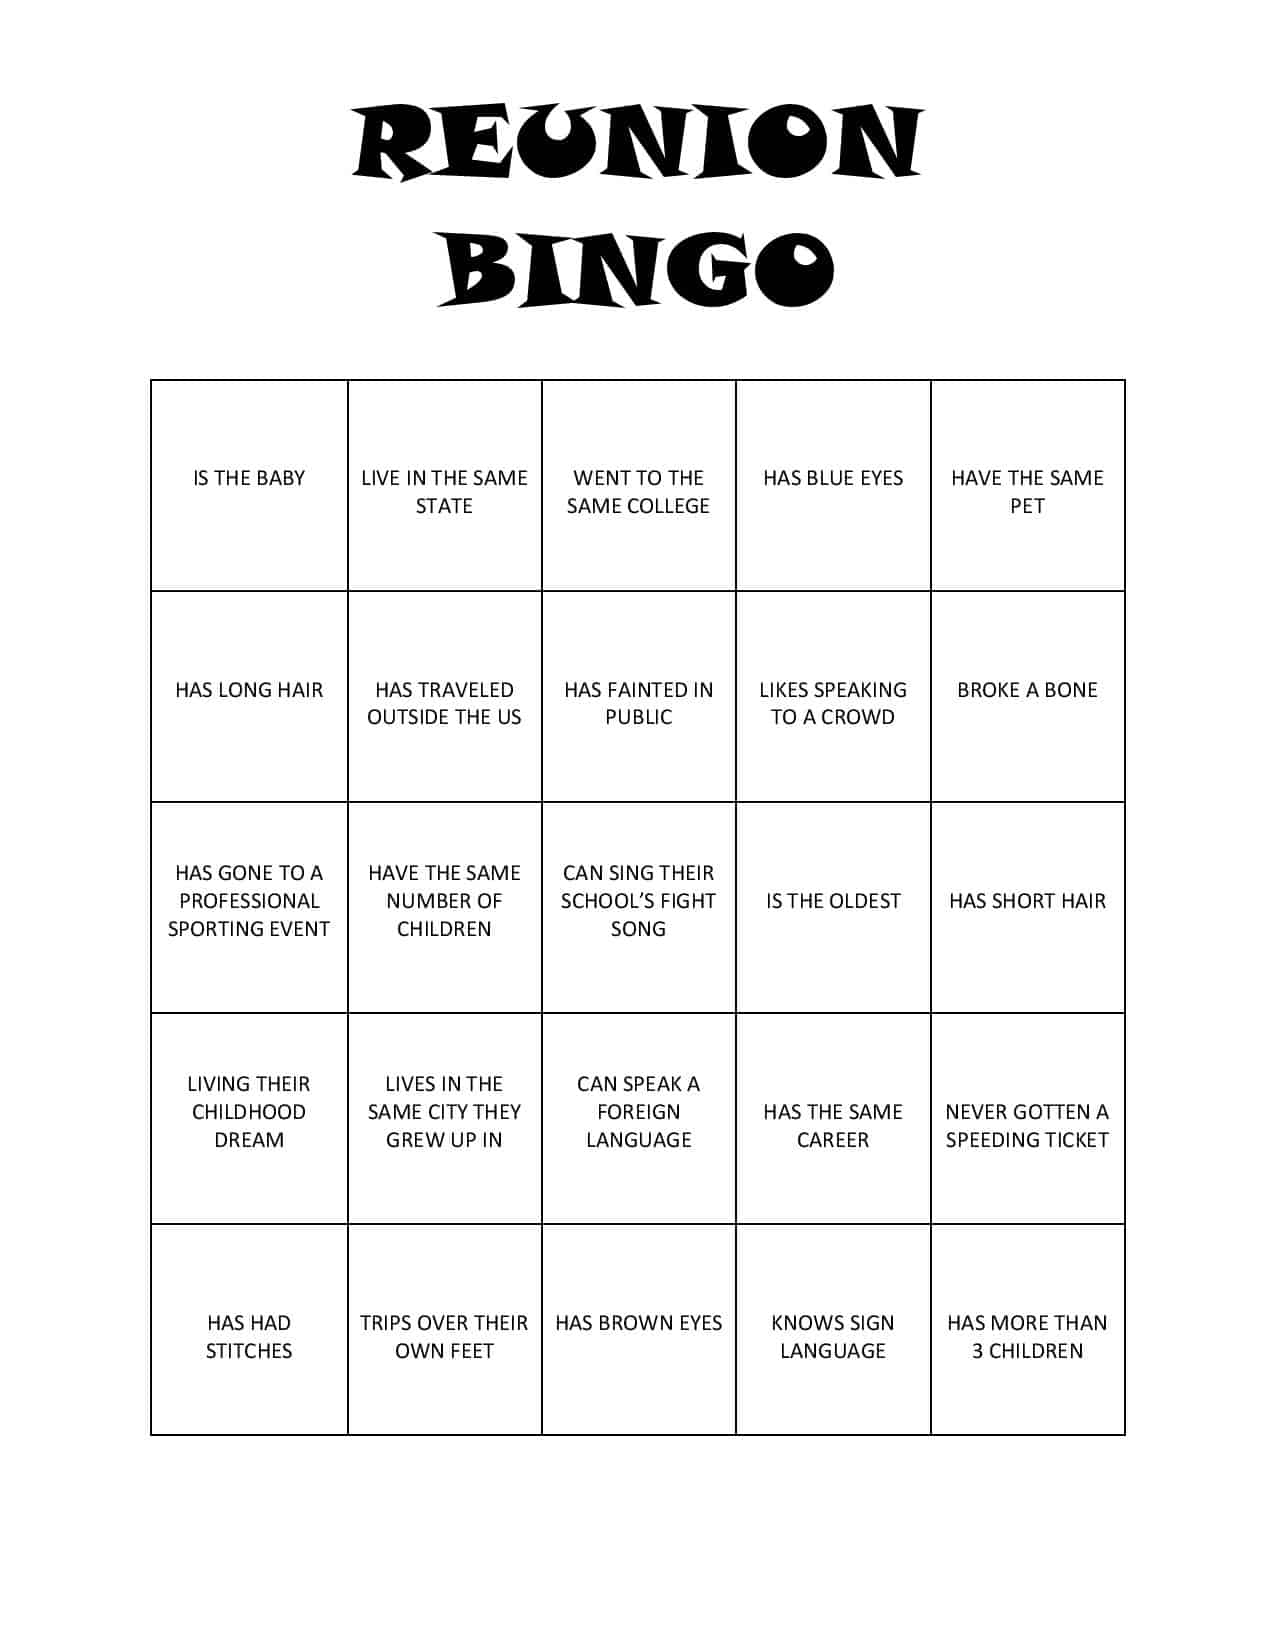 picture regarding Make New Friends Song Printable named Reunion Bingo Cost-free Printable - Tastefully Frugal